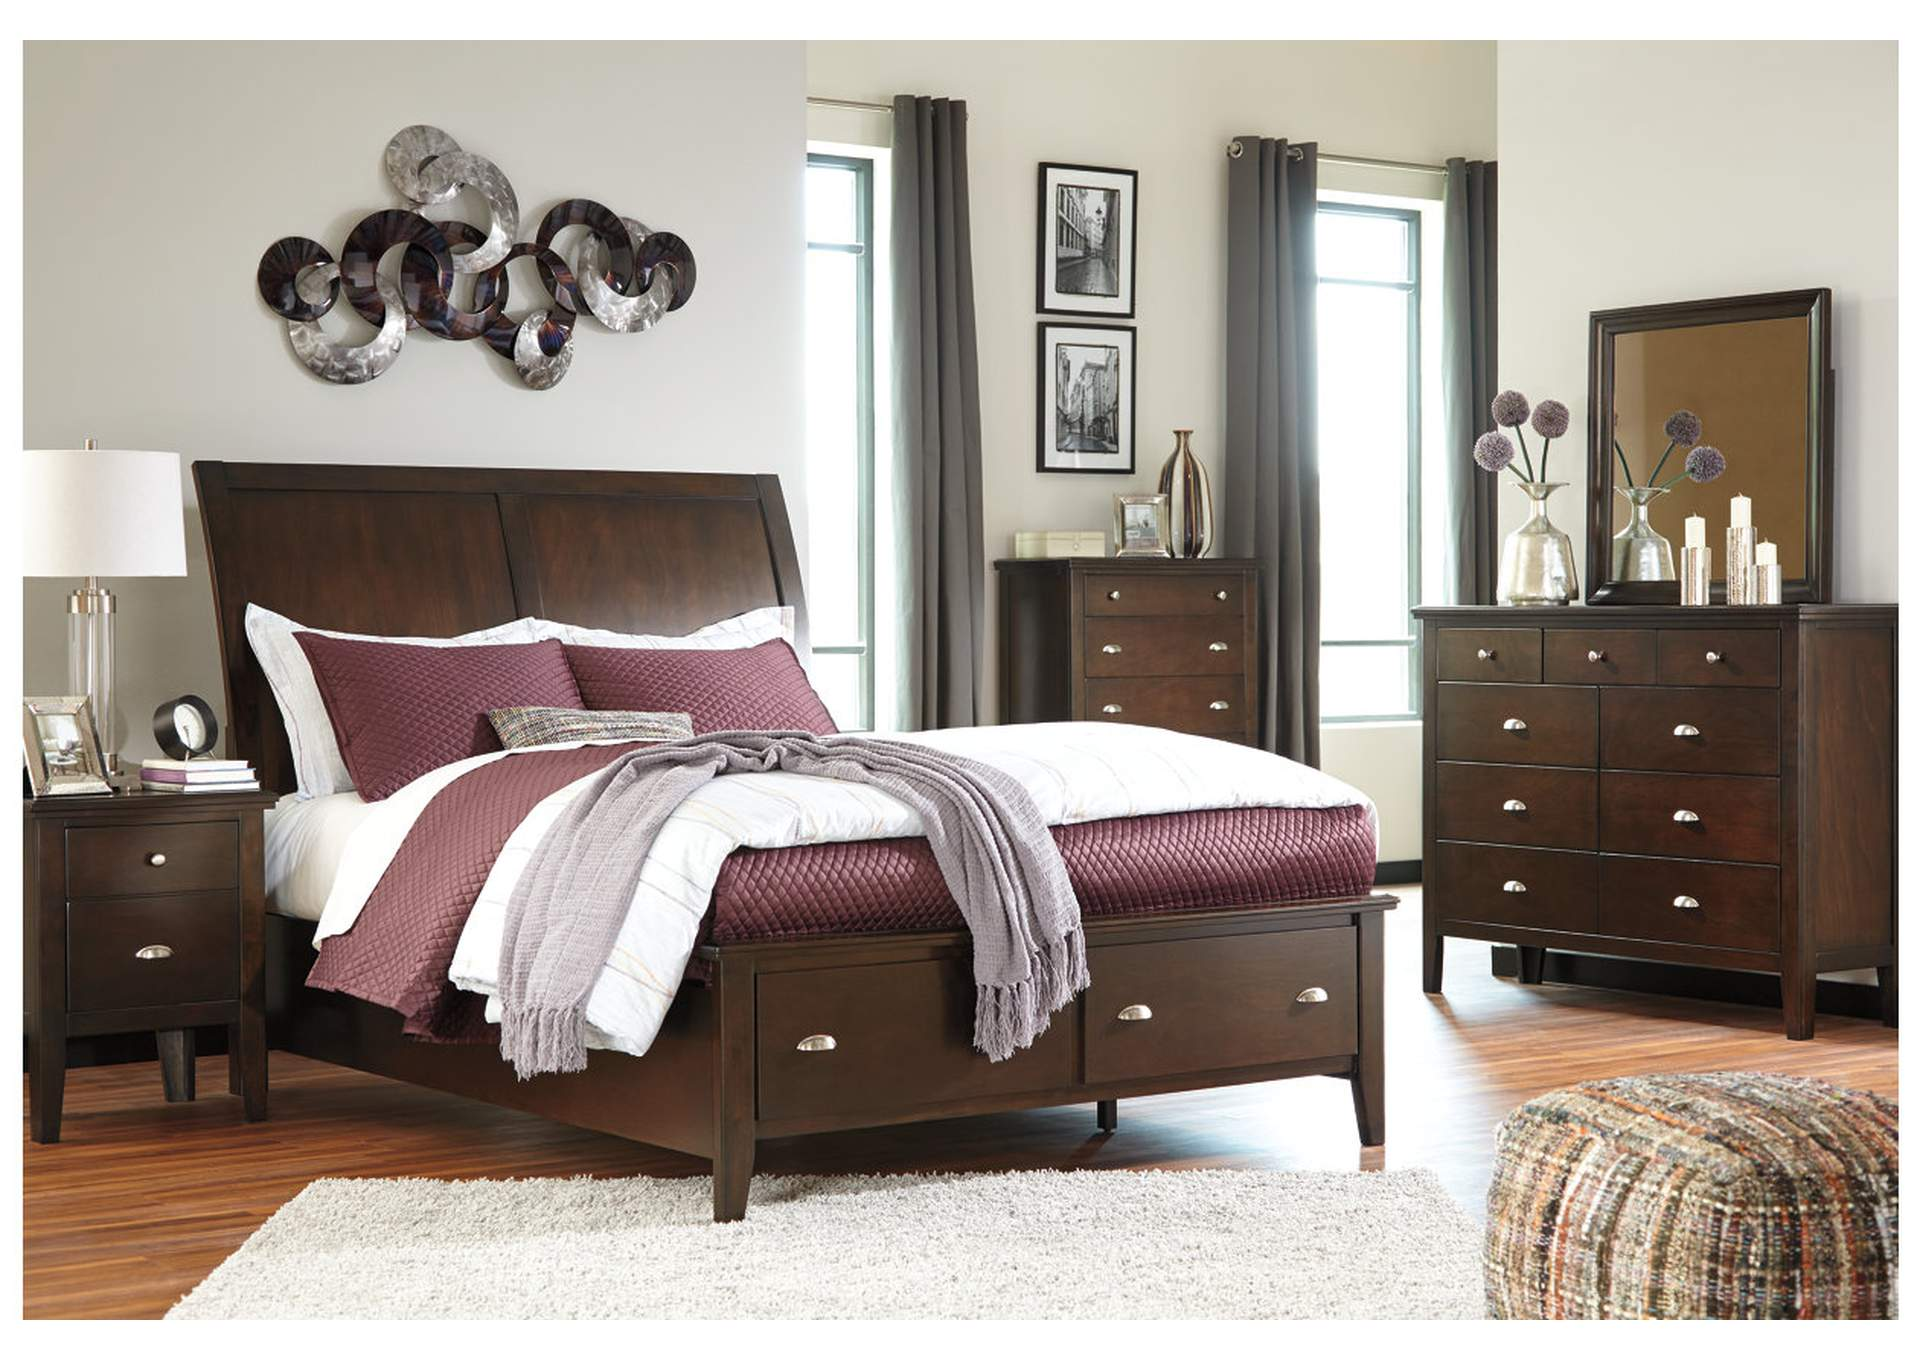 Evanburg Brown California King Sleigh Storage Bed w/Dresser, Mirror, Drawer Chest & Nightstand,Signature Design By Ashley